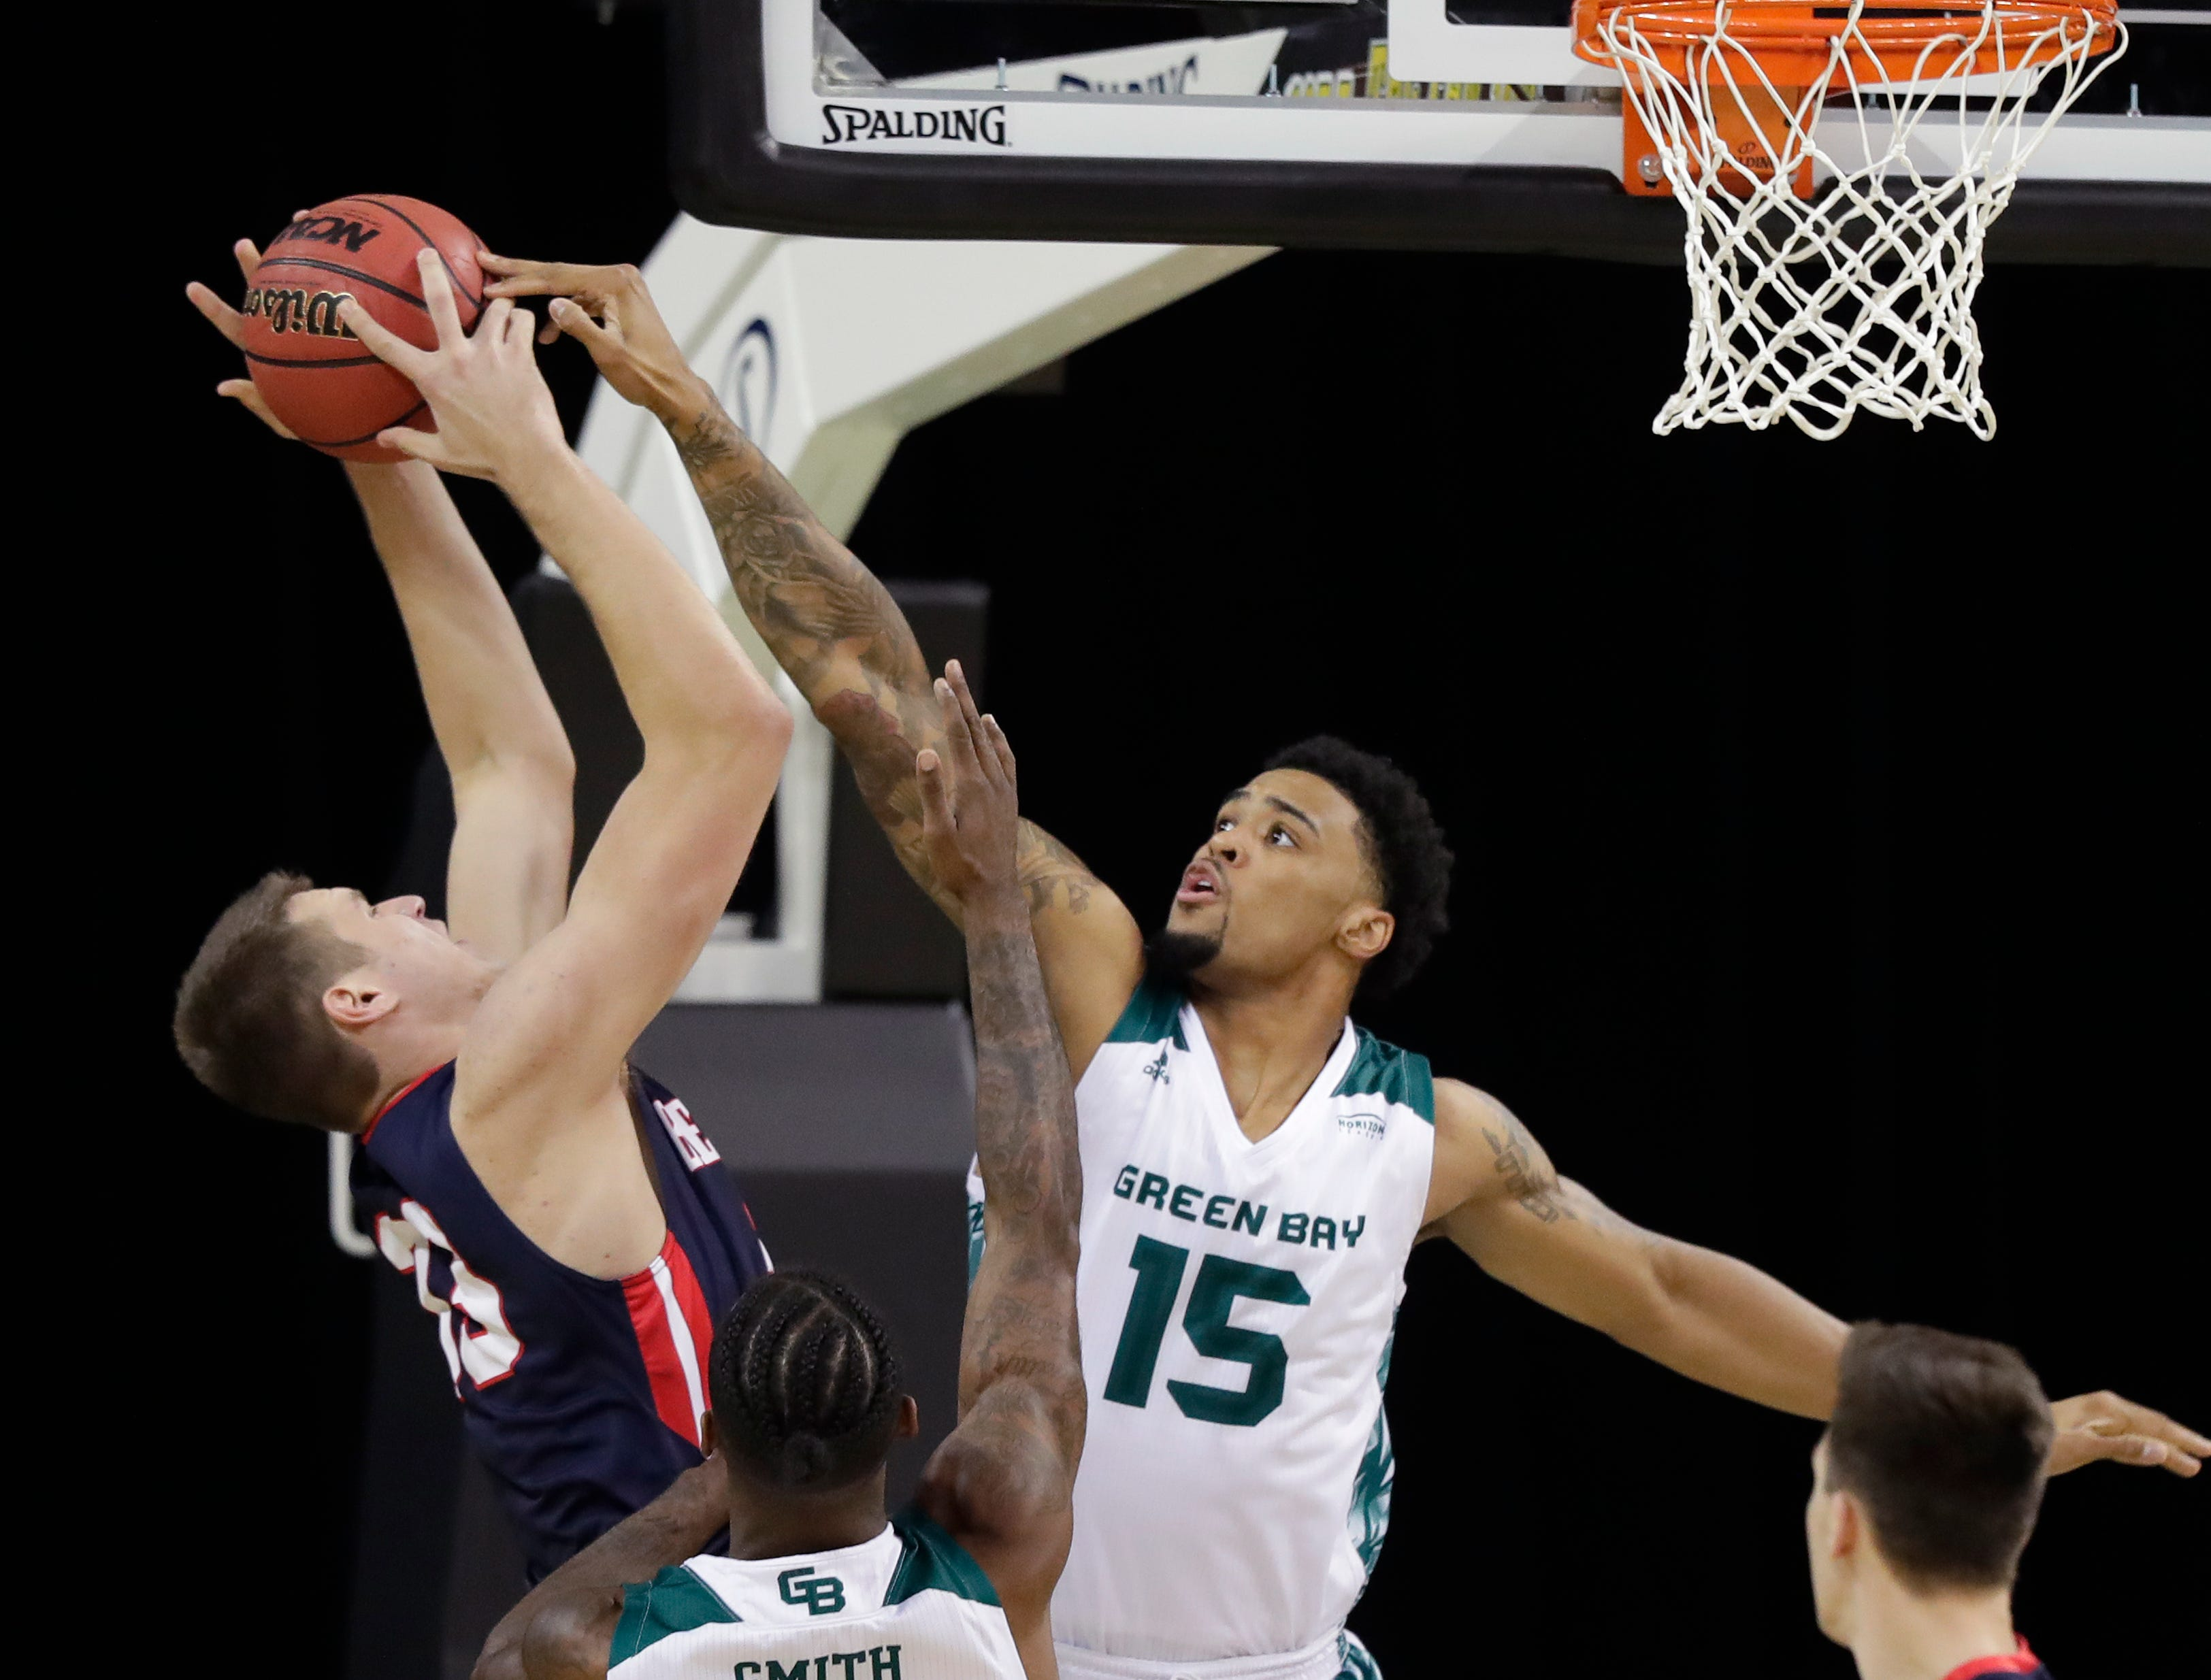 Green Bay Phoenix forward Manny Patterson (15) defends against Belmont Bruins center Nick Muszynski (33) in a NCAA basketball game at the Resch Center on Saturday, December 1, 2018 in Ashwaubenon, Wis.